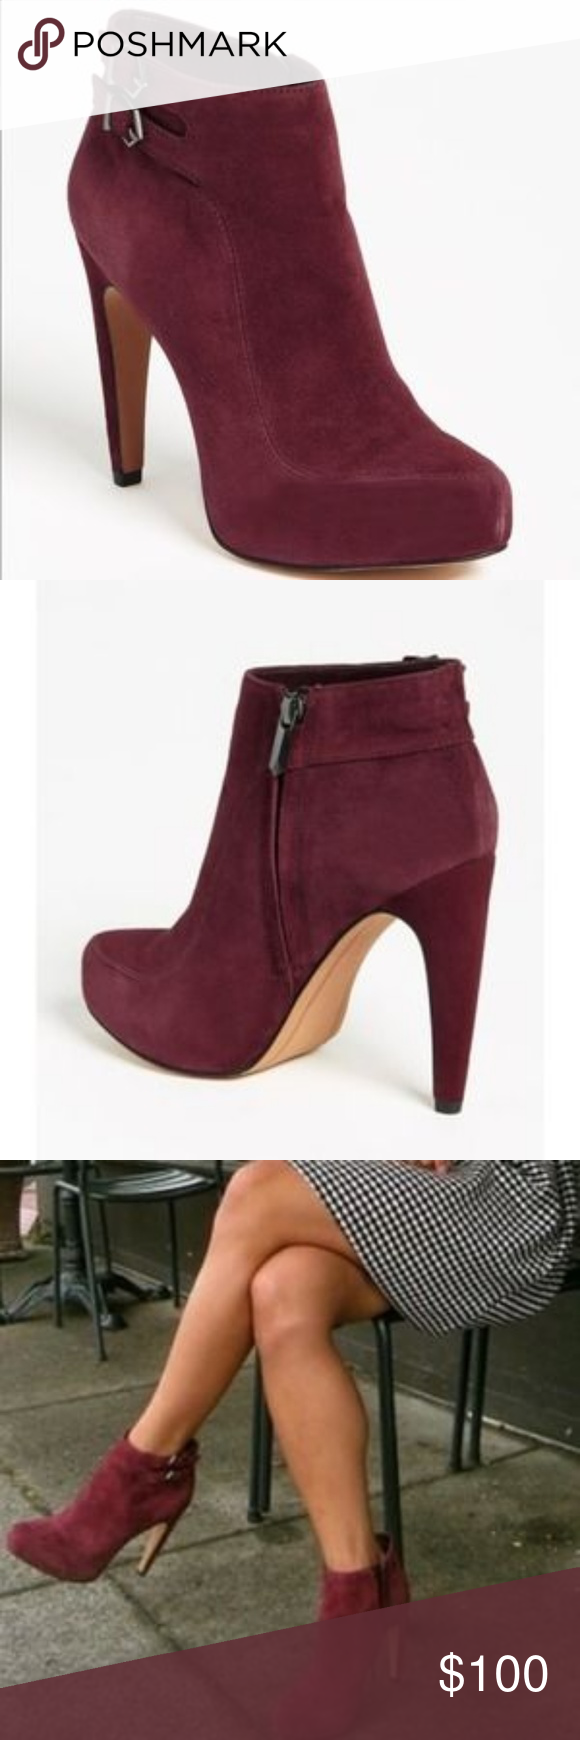 3e18e67801c15 Sam Edelman  Kit  ankle boots in burgundy suede Sam Edelman  Kit  ankle  boots in burgundy suede Worn once EUC. Very unnoticeable spots and scuff.  color ...